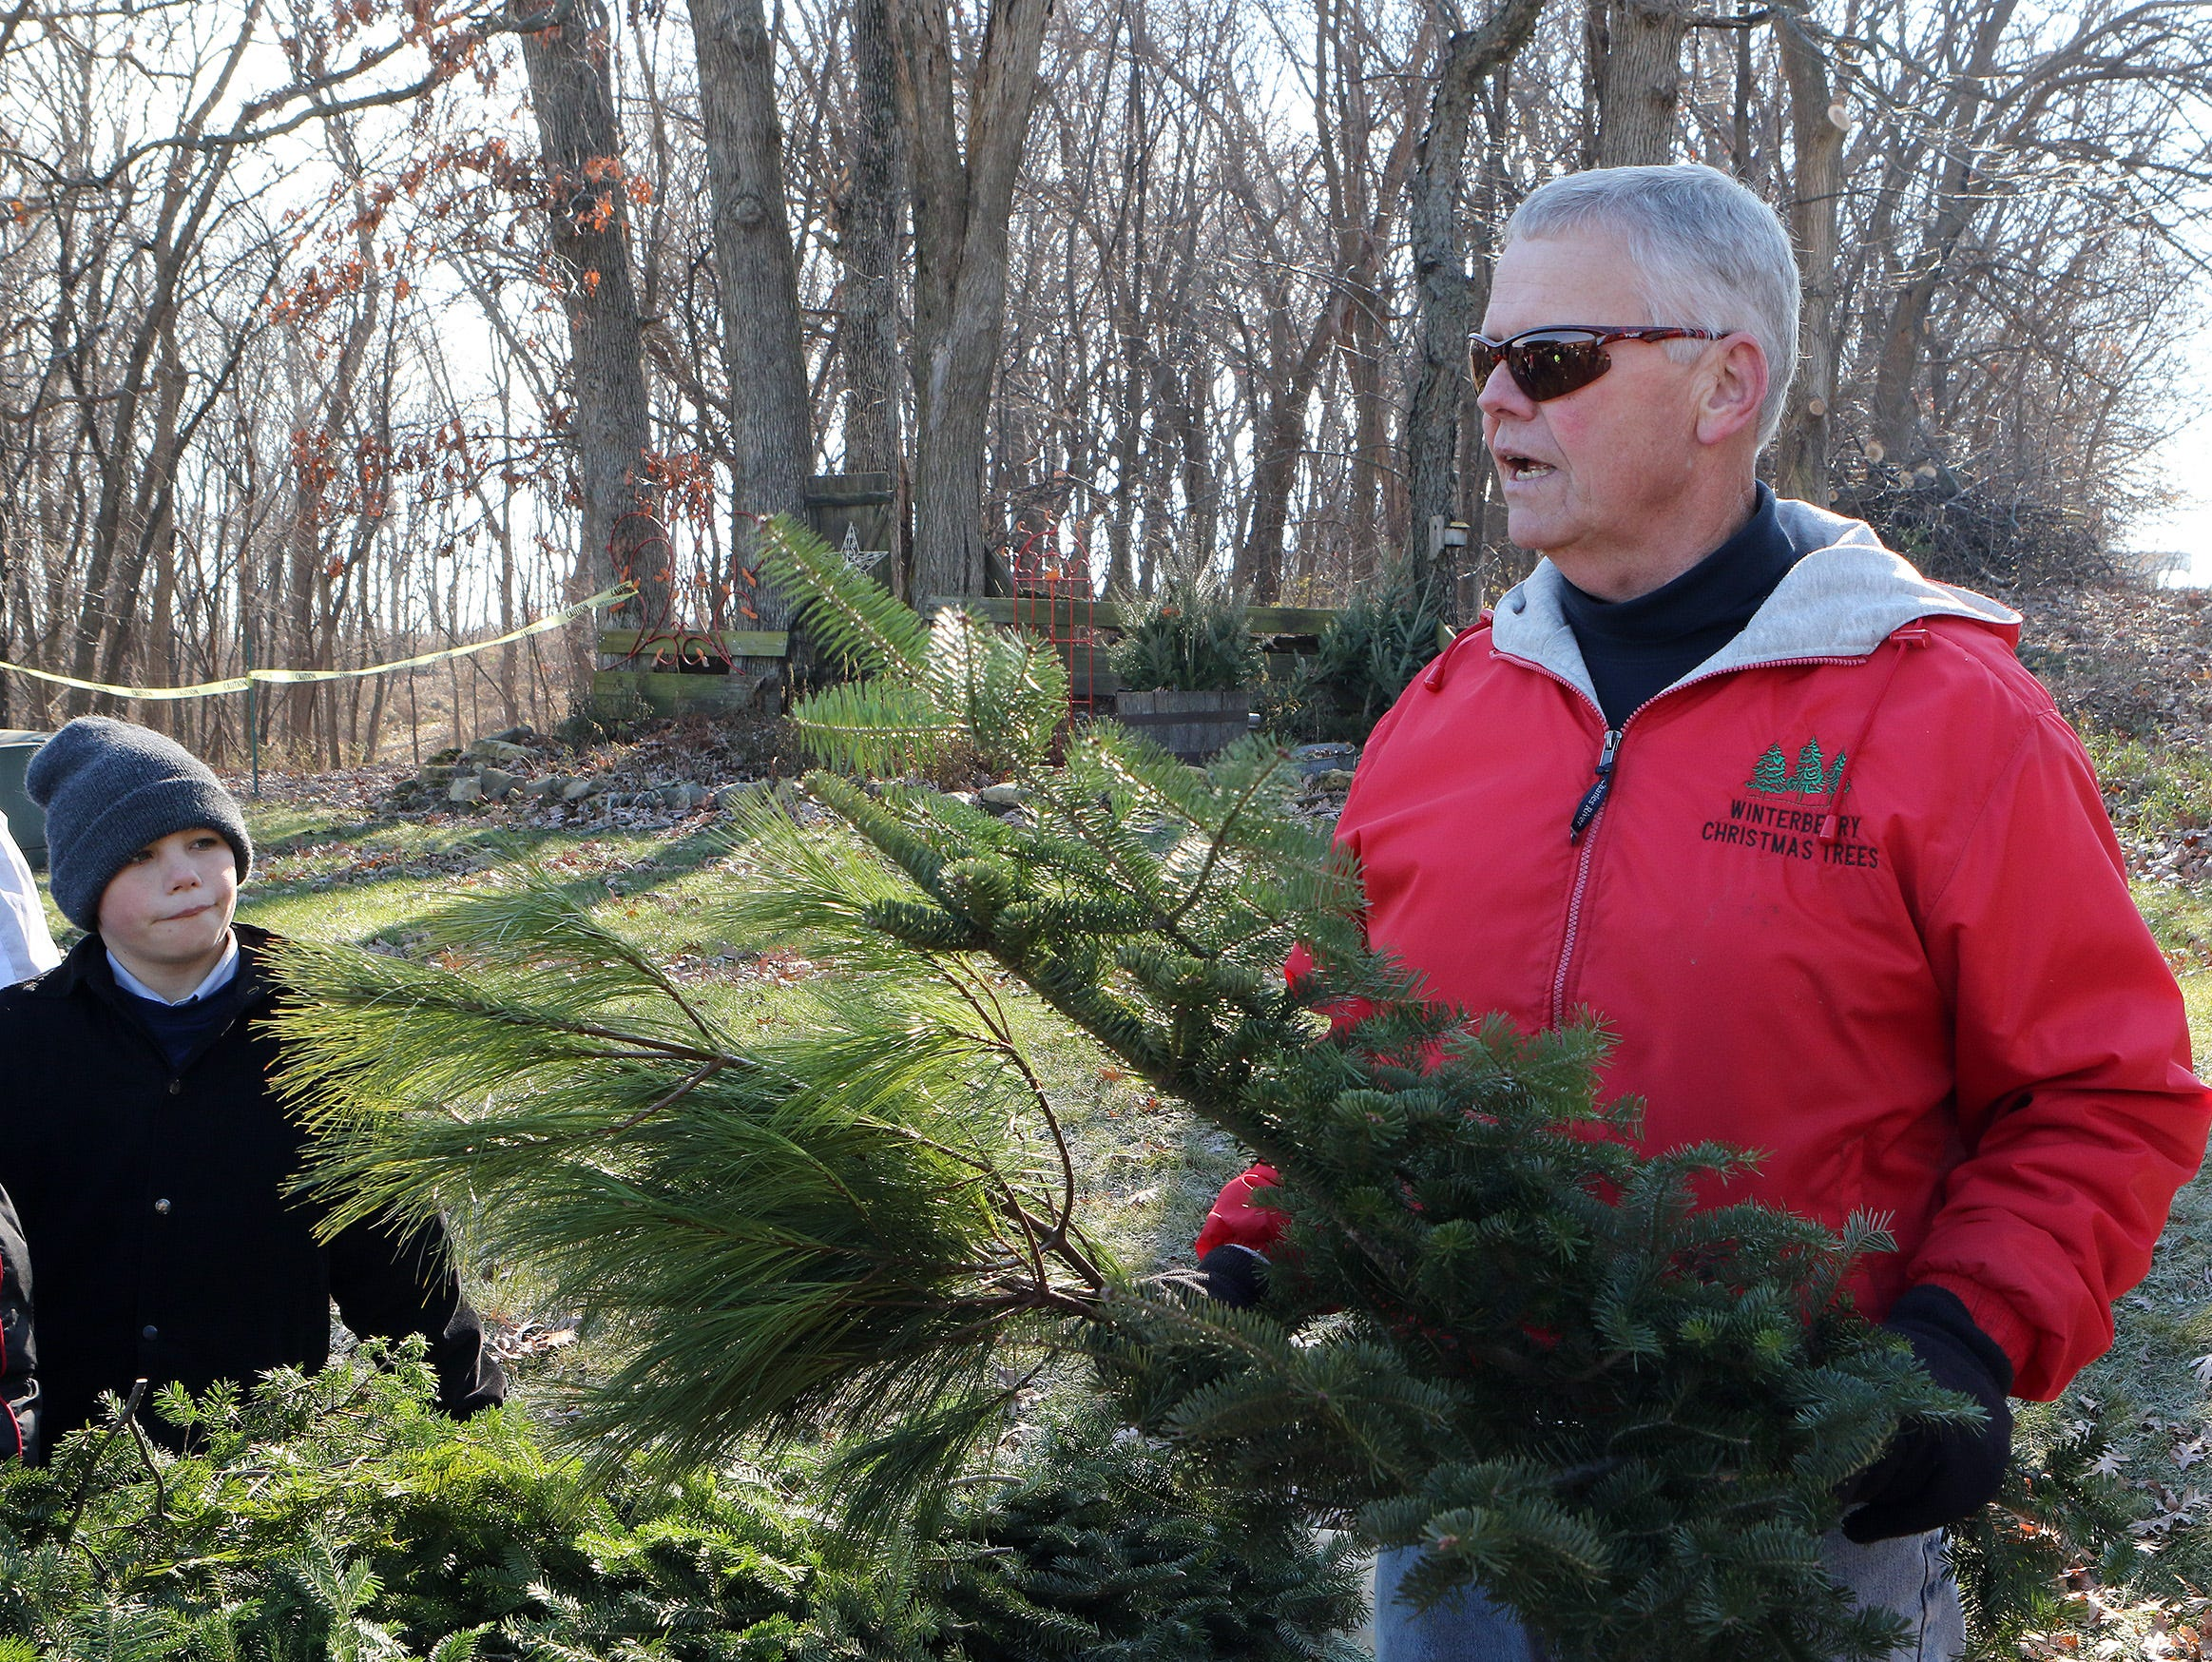 Greg Lancaster, owner of Lancaster's Winterberry Tree Farm in Brooklyn, teaches Albany fourth graders about Christmas trees during a visit on Nov. 15. Alice In Dairyland, Kaitlyn Riley, helped cut the first tree of the season.